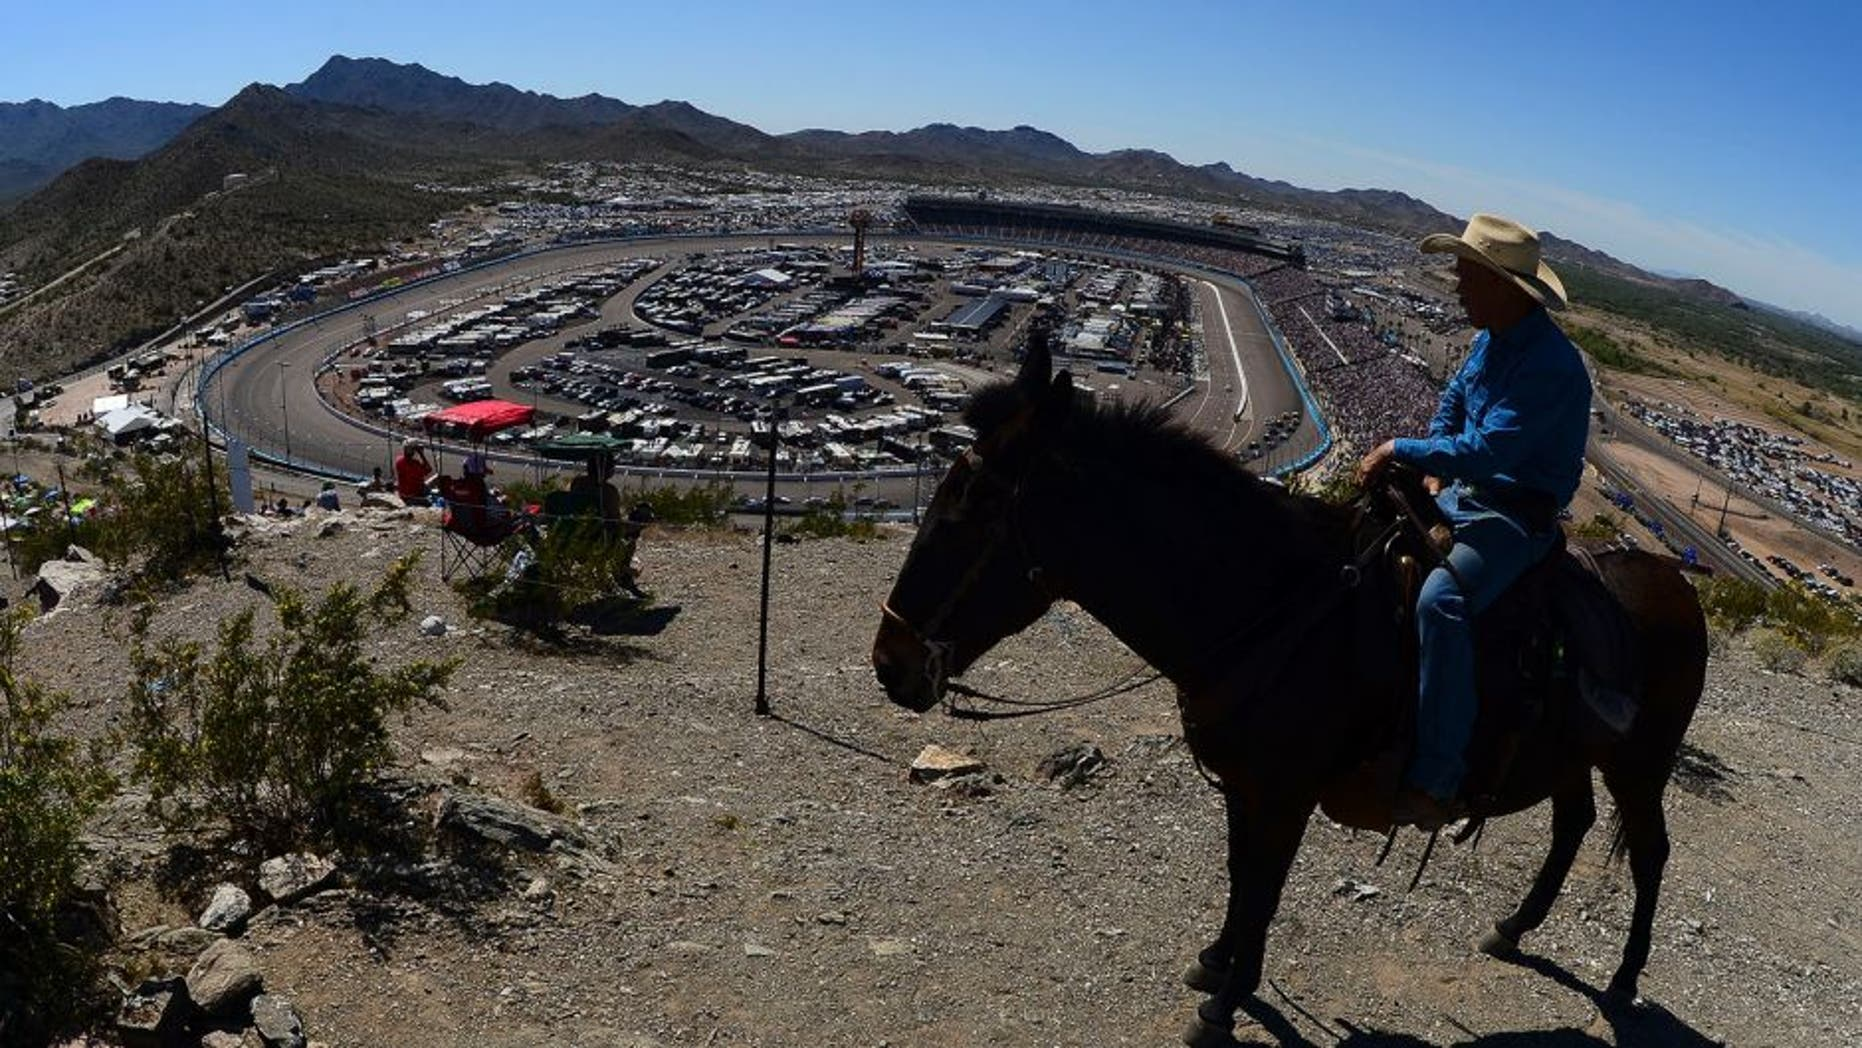 A race fan on horseback looks on during the NASCAR Sprint Cup Series CampingWorld.com 500 at Phoenix International Raceway on March 15, 2015 in Avondale, Arizona.